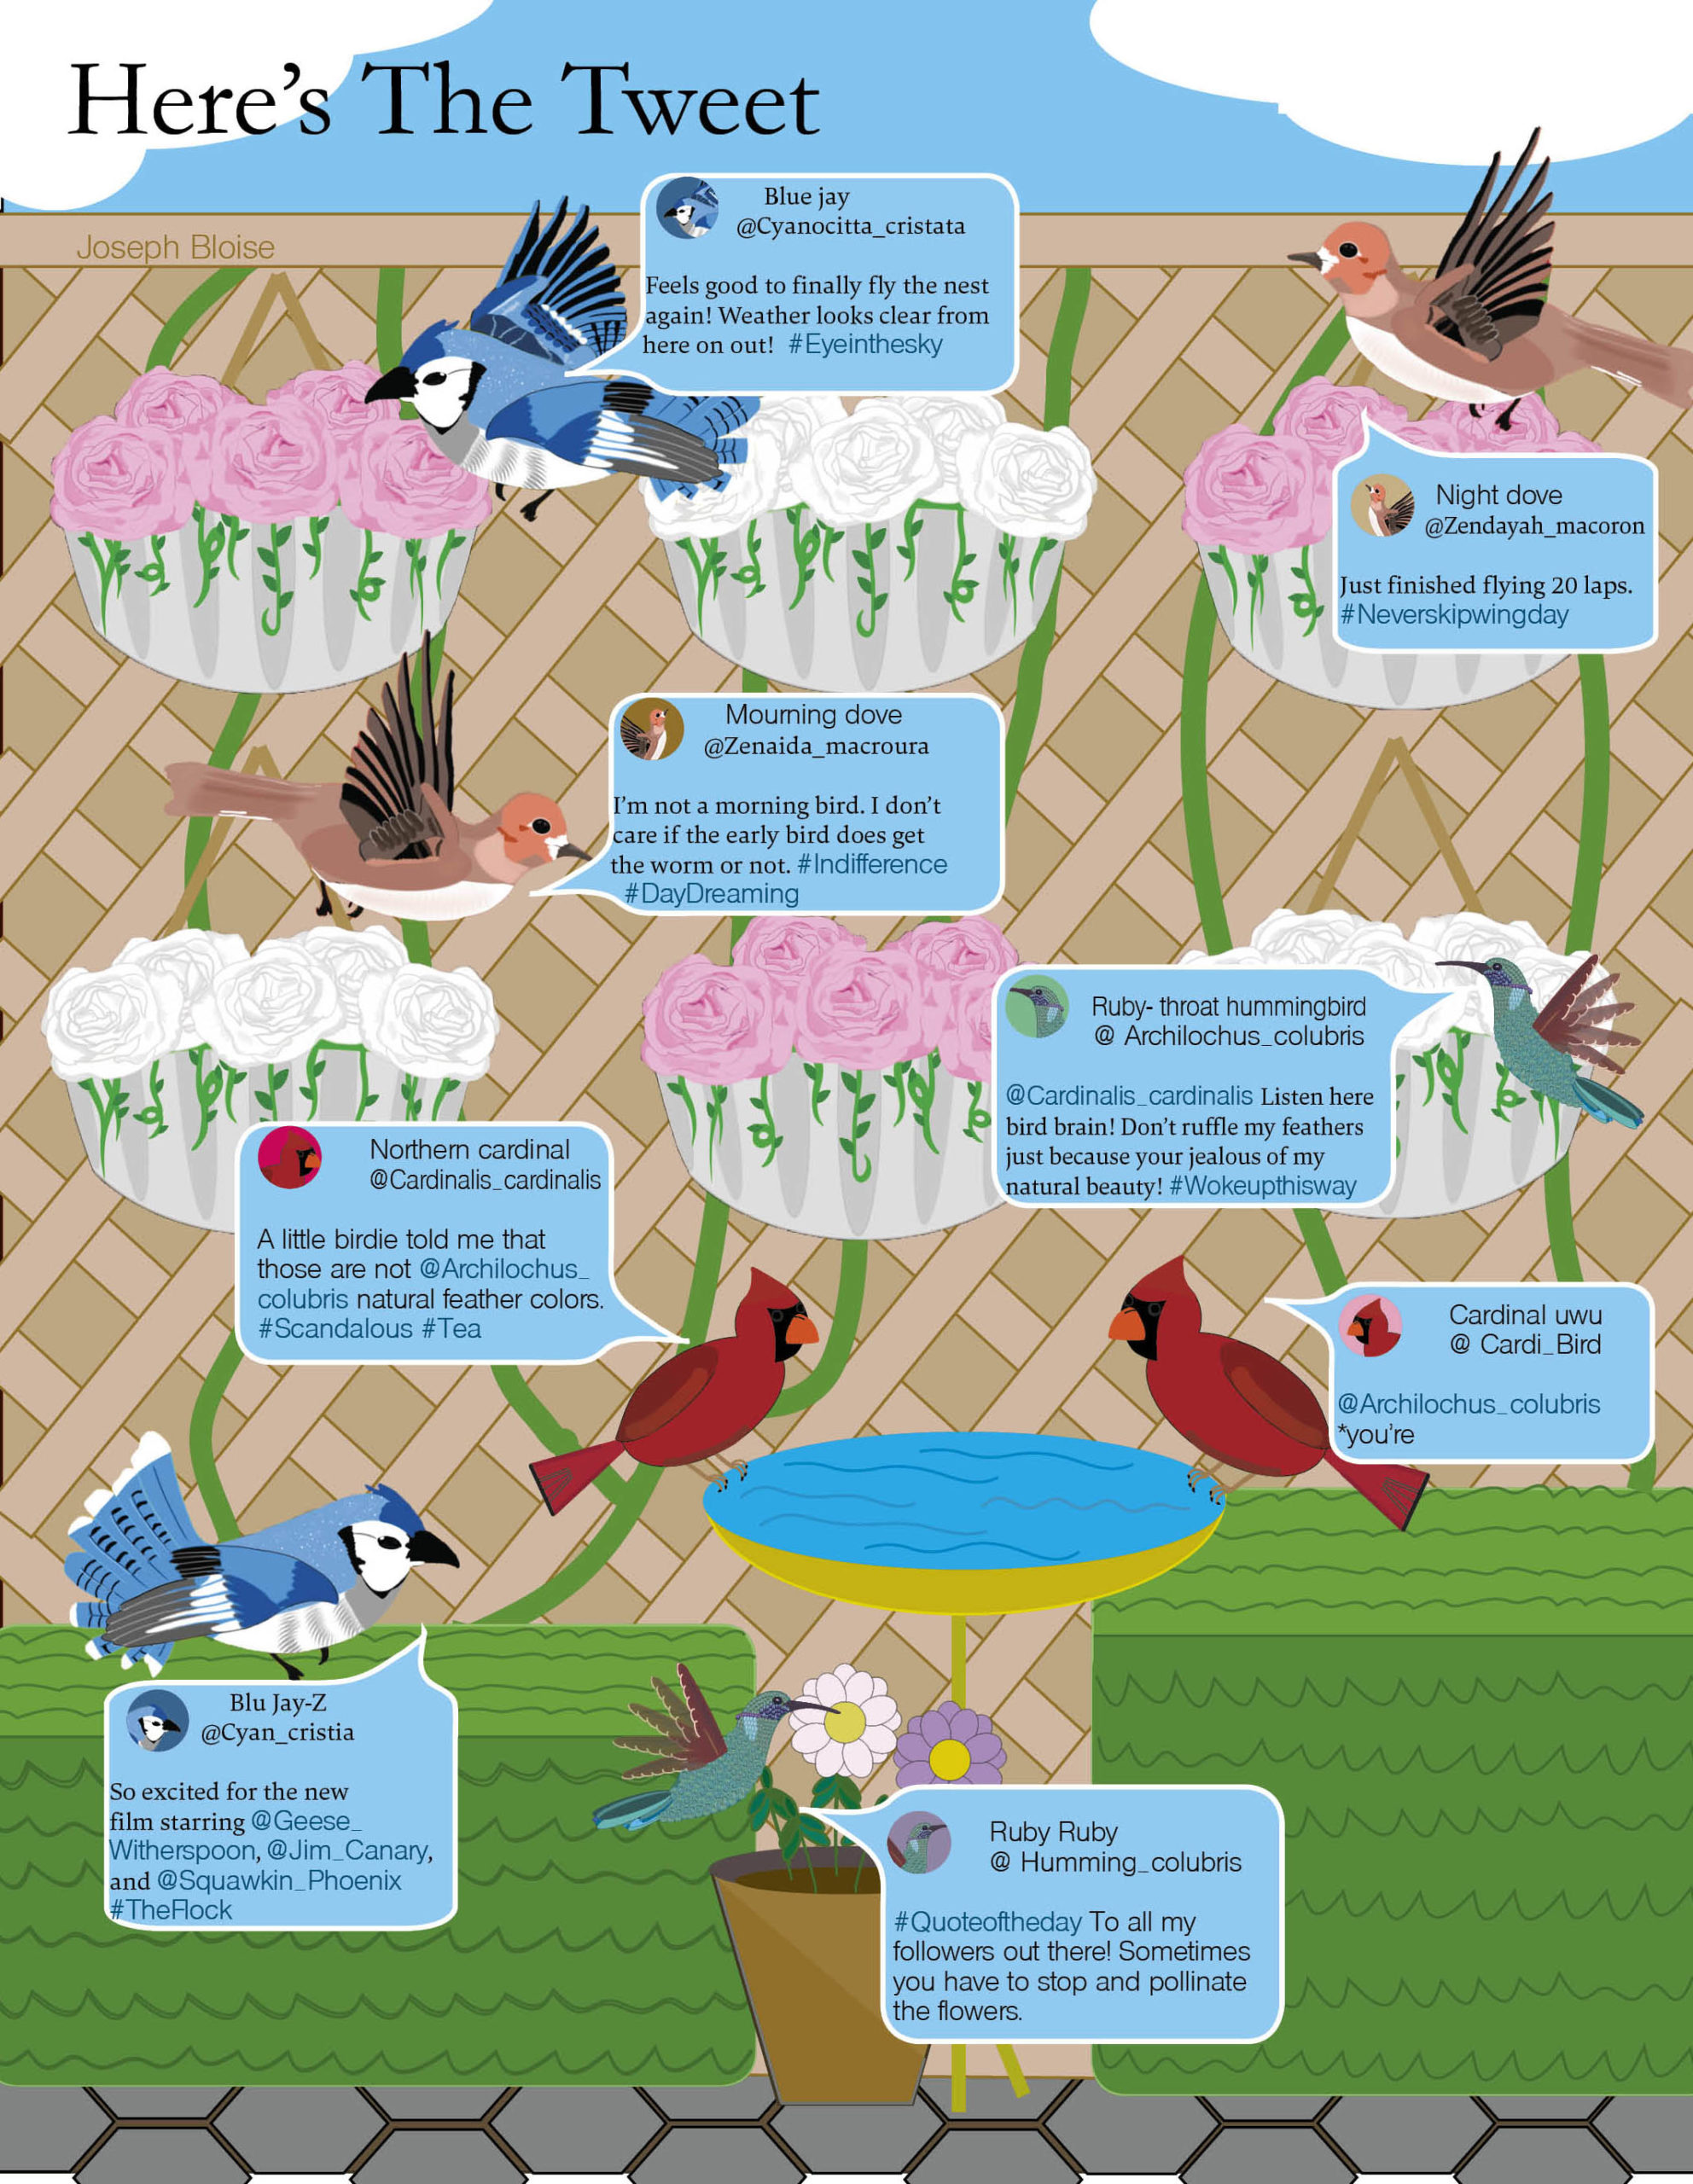 Here's the tweet infographic